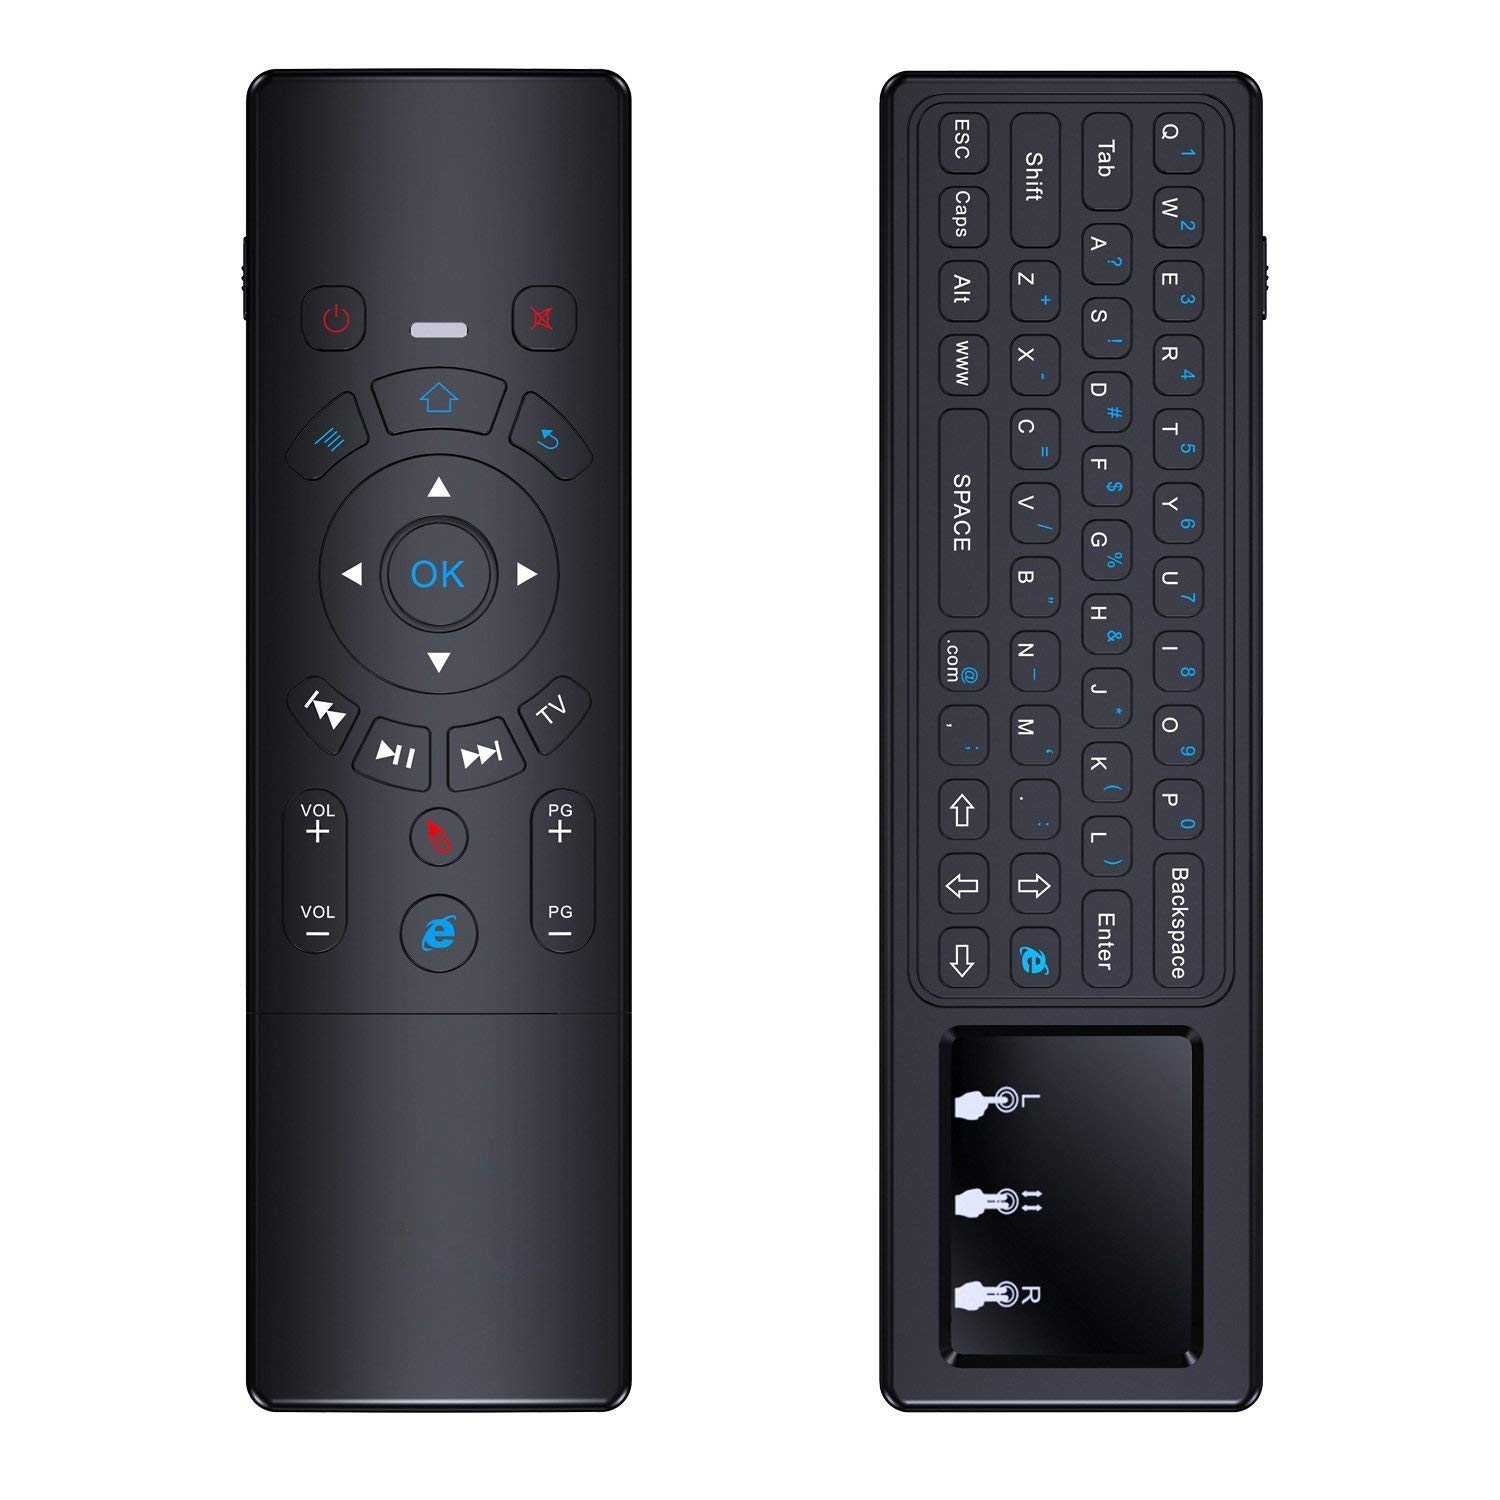 2.4GHz Mini Wireless Keyboard with Mouse & Touchpad, ANEWISH Rechargeable Handheld Air Sensor for Games & Remote Control for Android TV Box, Smart TV, PC